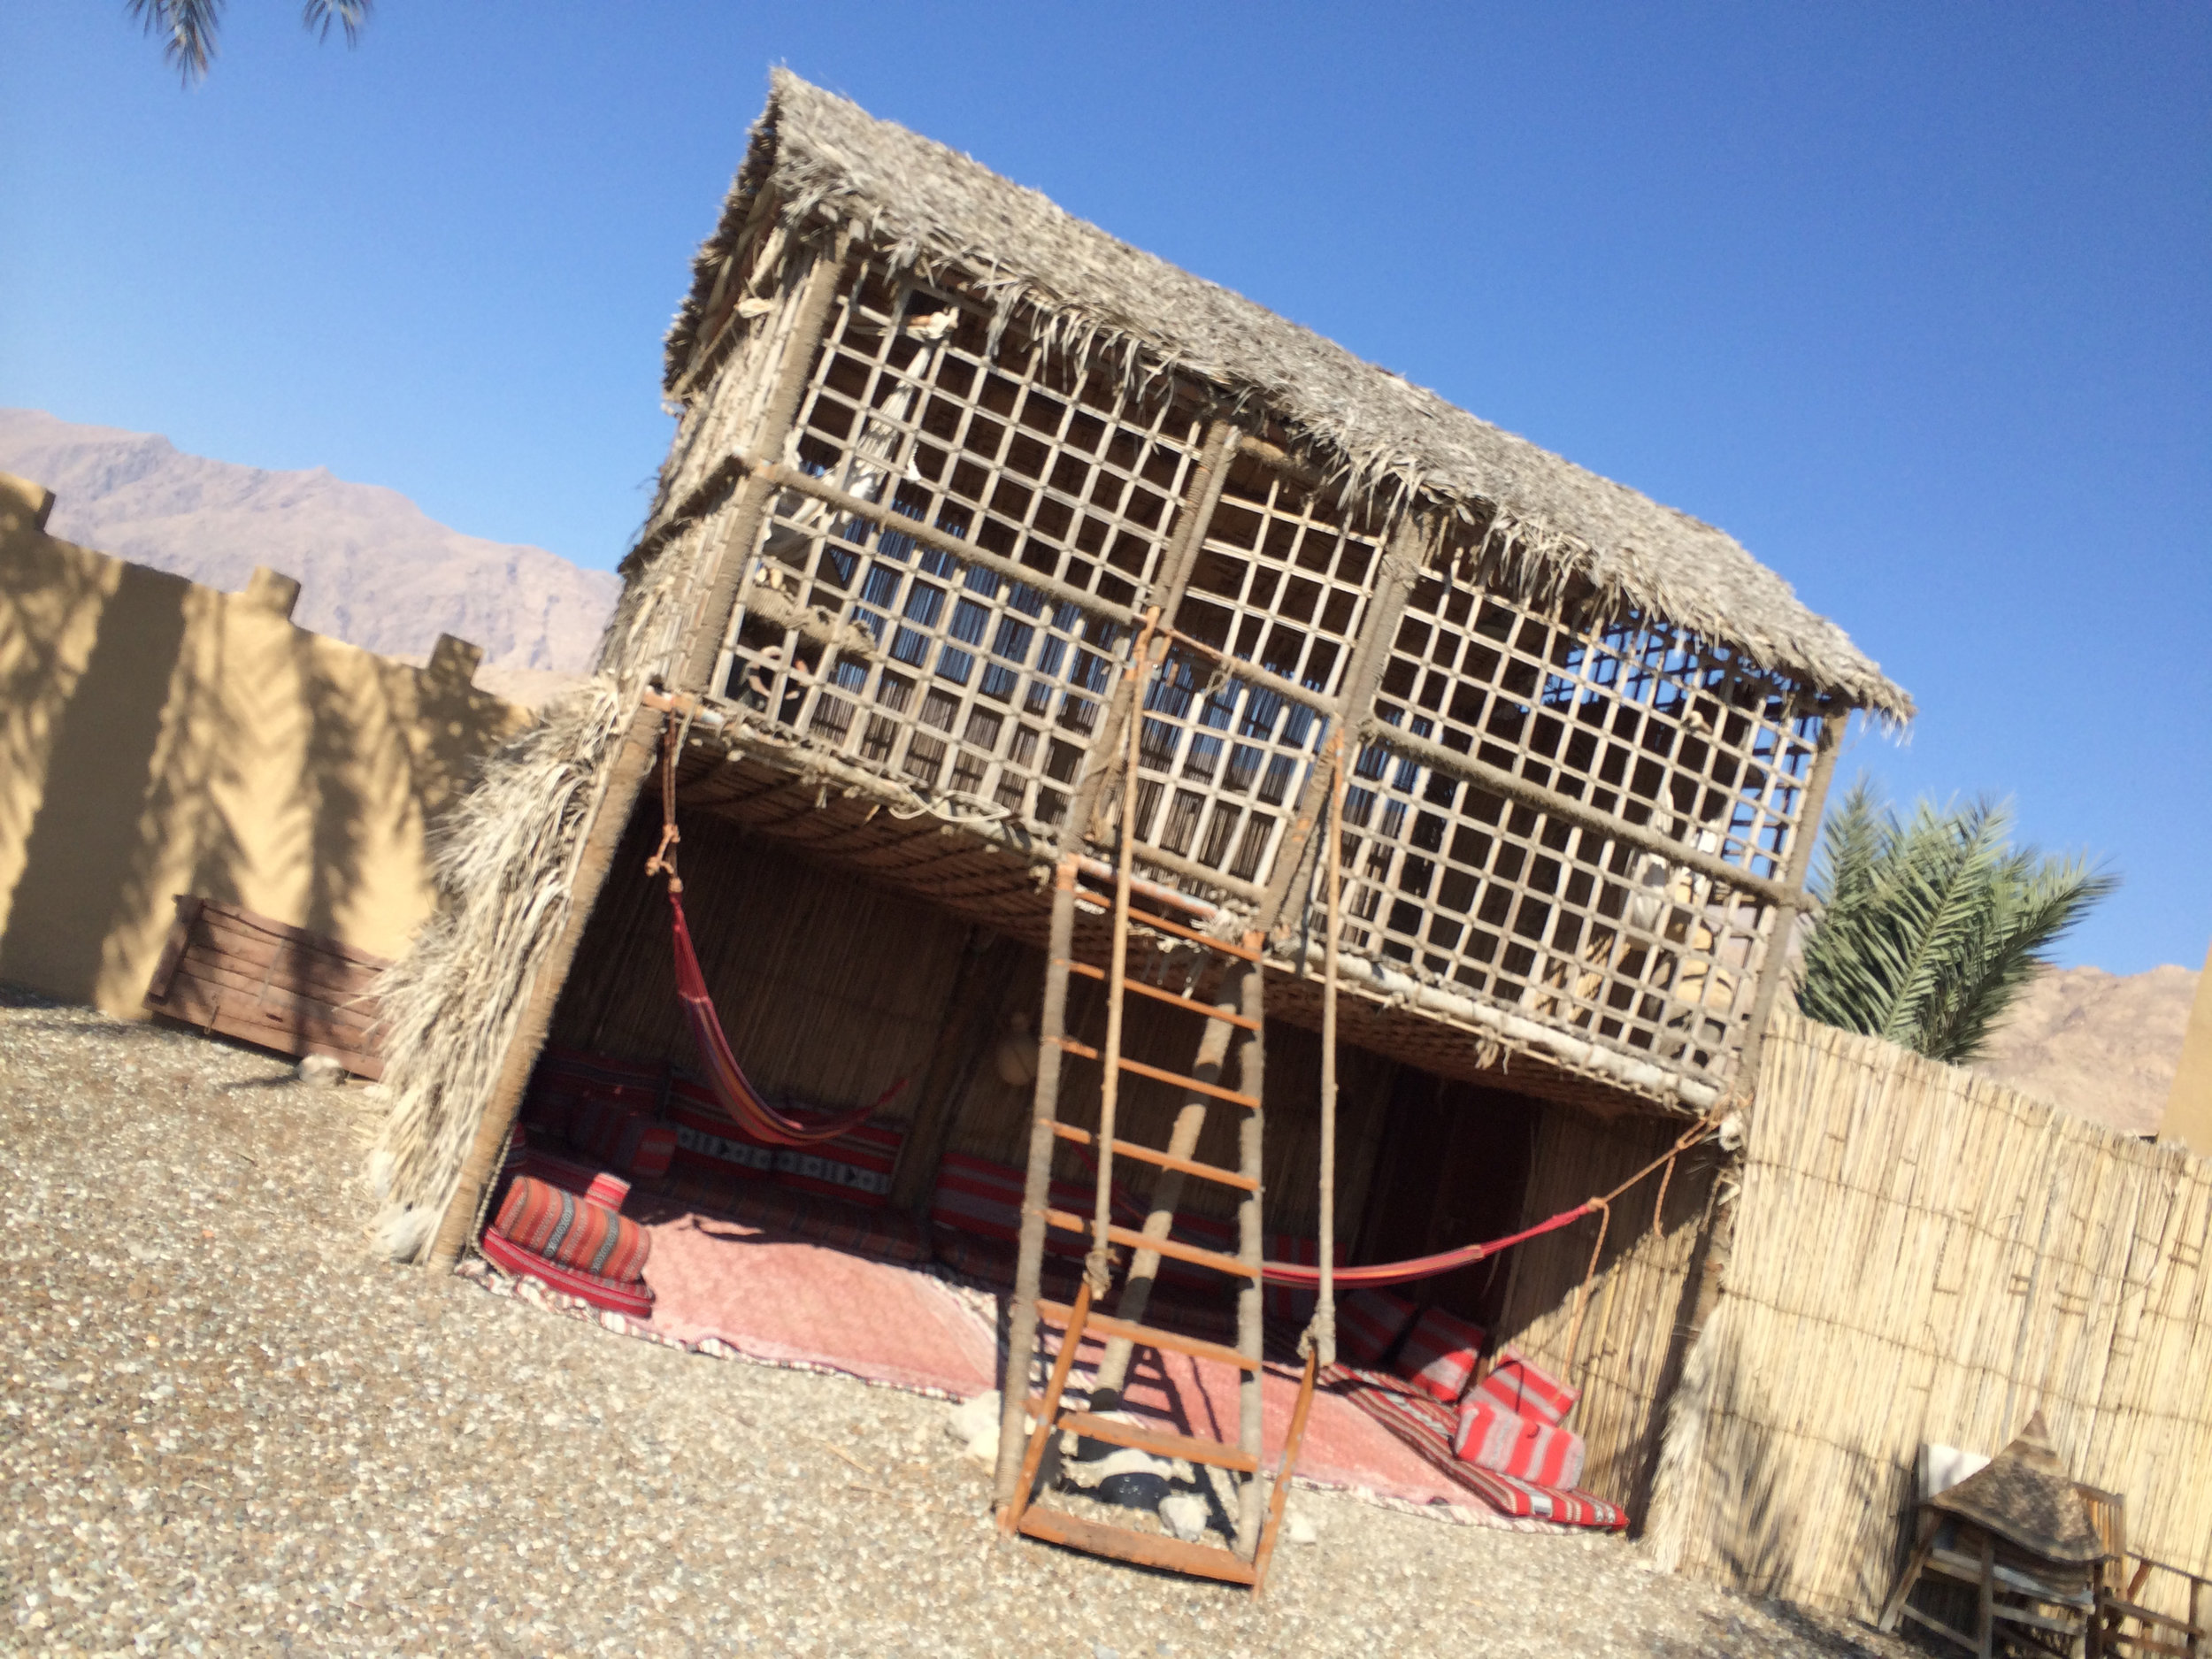 Absolute Adventure's activity center in Dibba, Oman